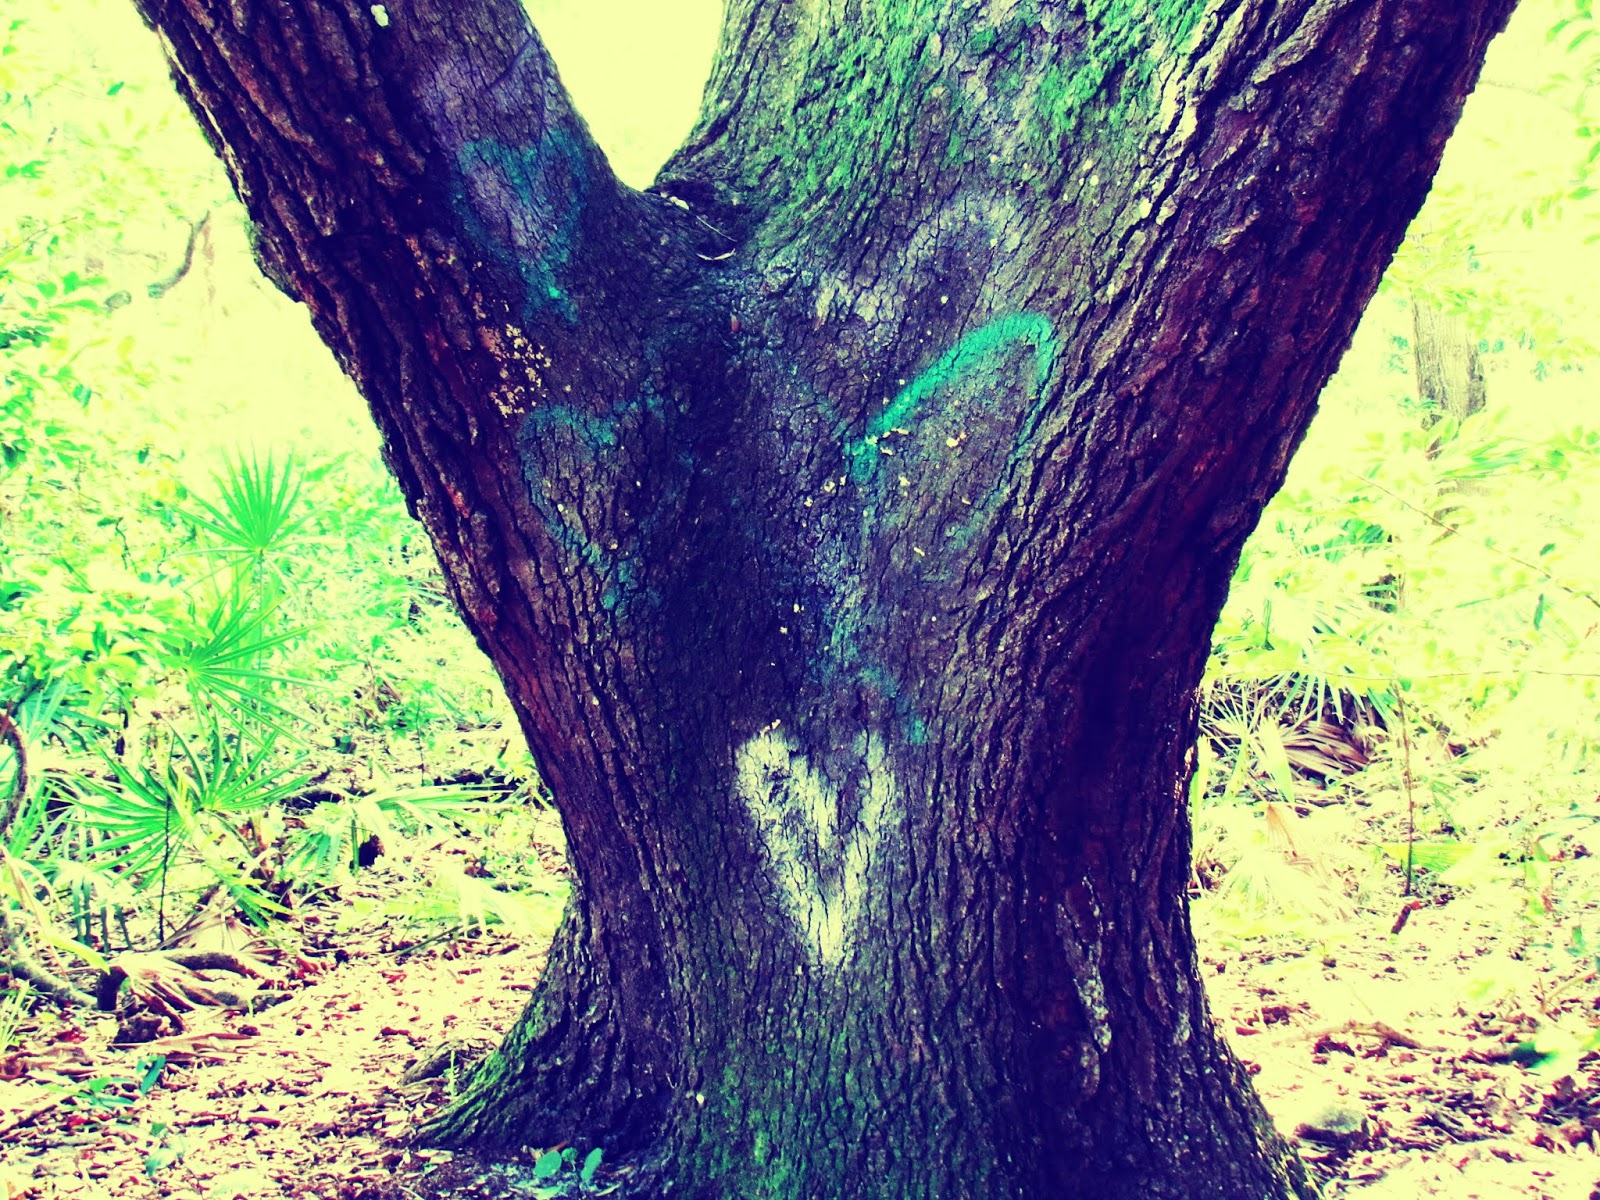 An old oak tree with colorful chalk hearts drawn all over it in Florida with Spanish moss